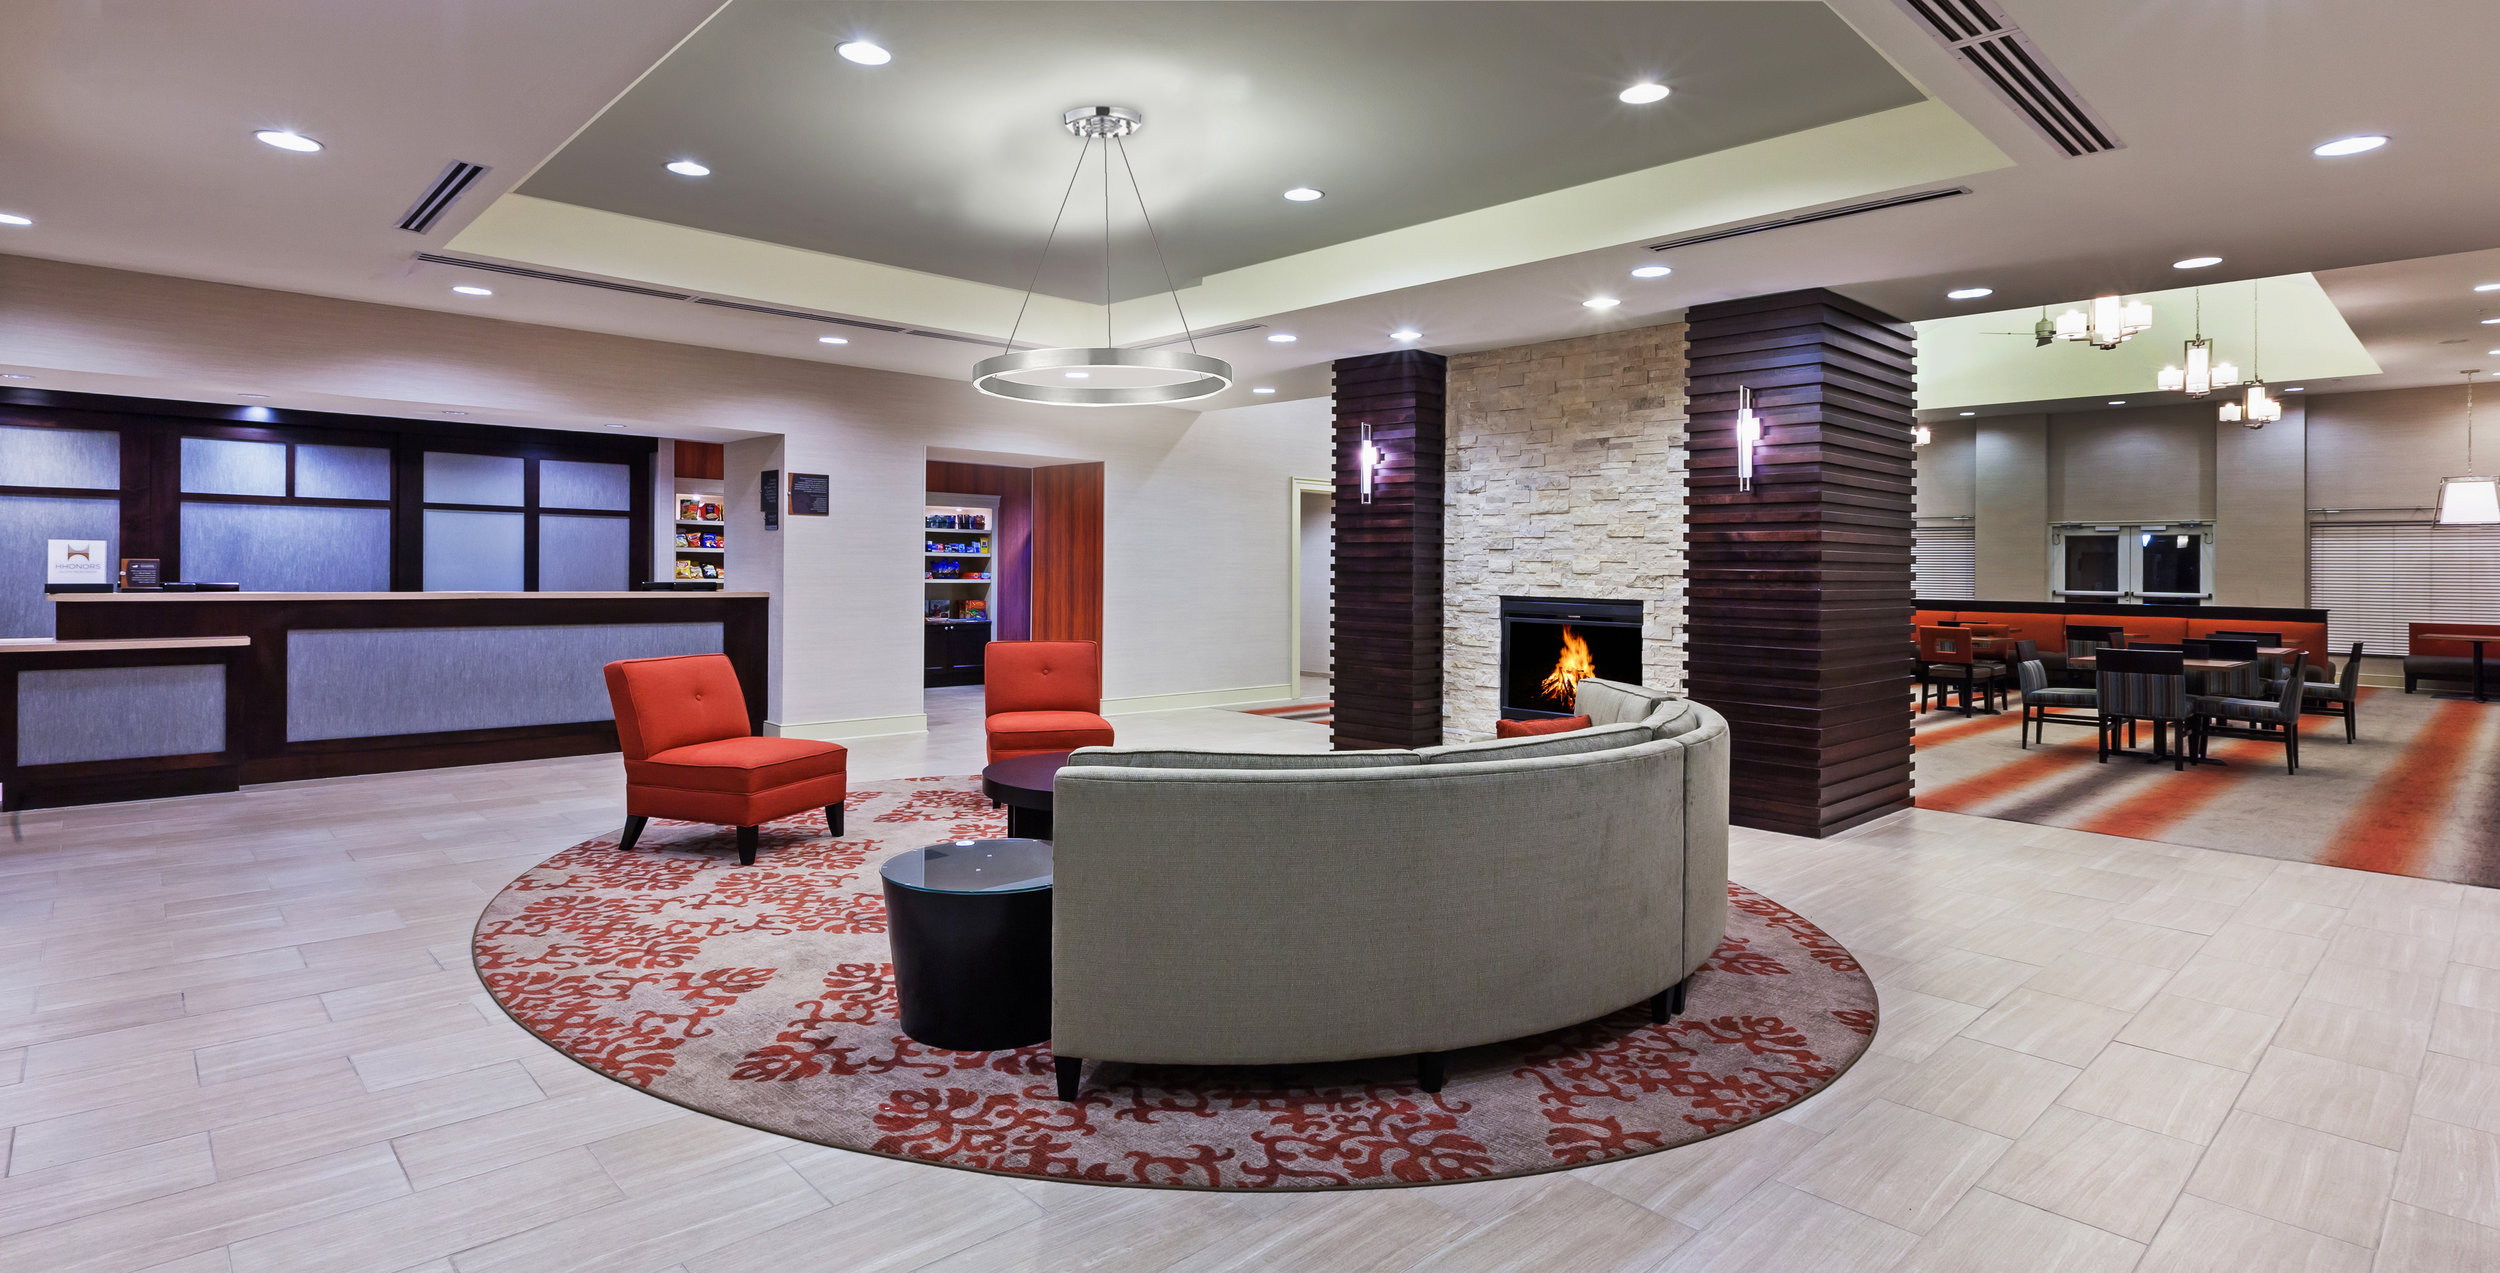 Homewood Suites by Hilton, Texas